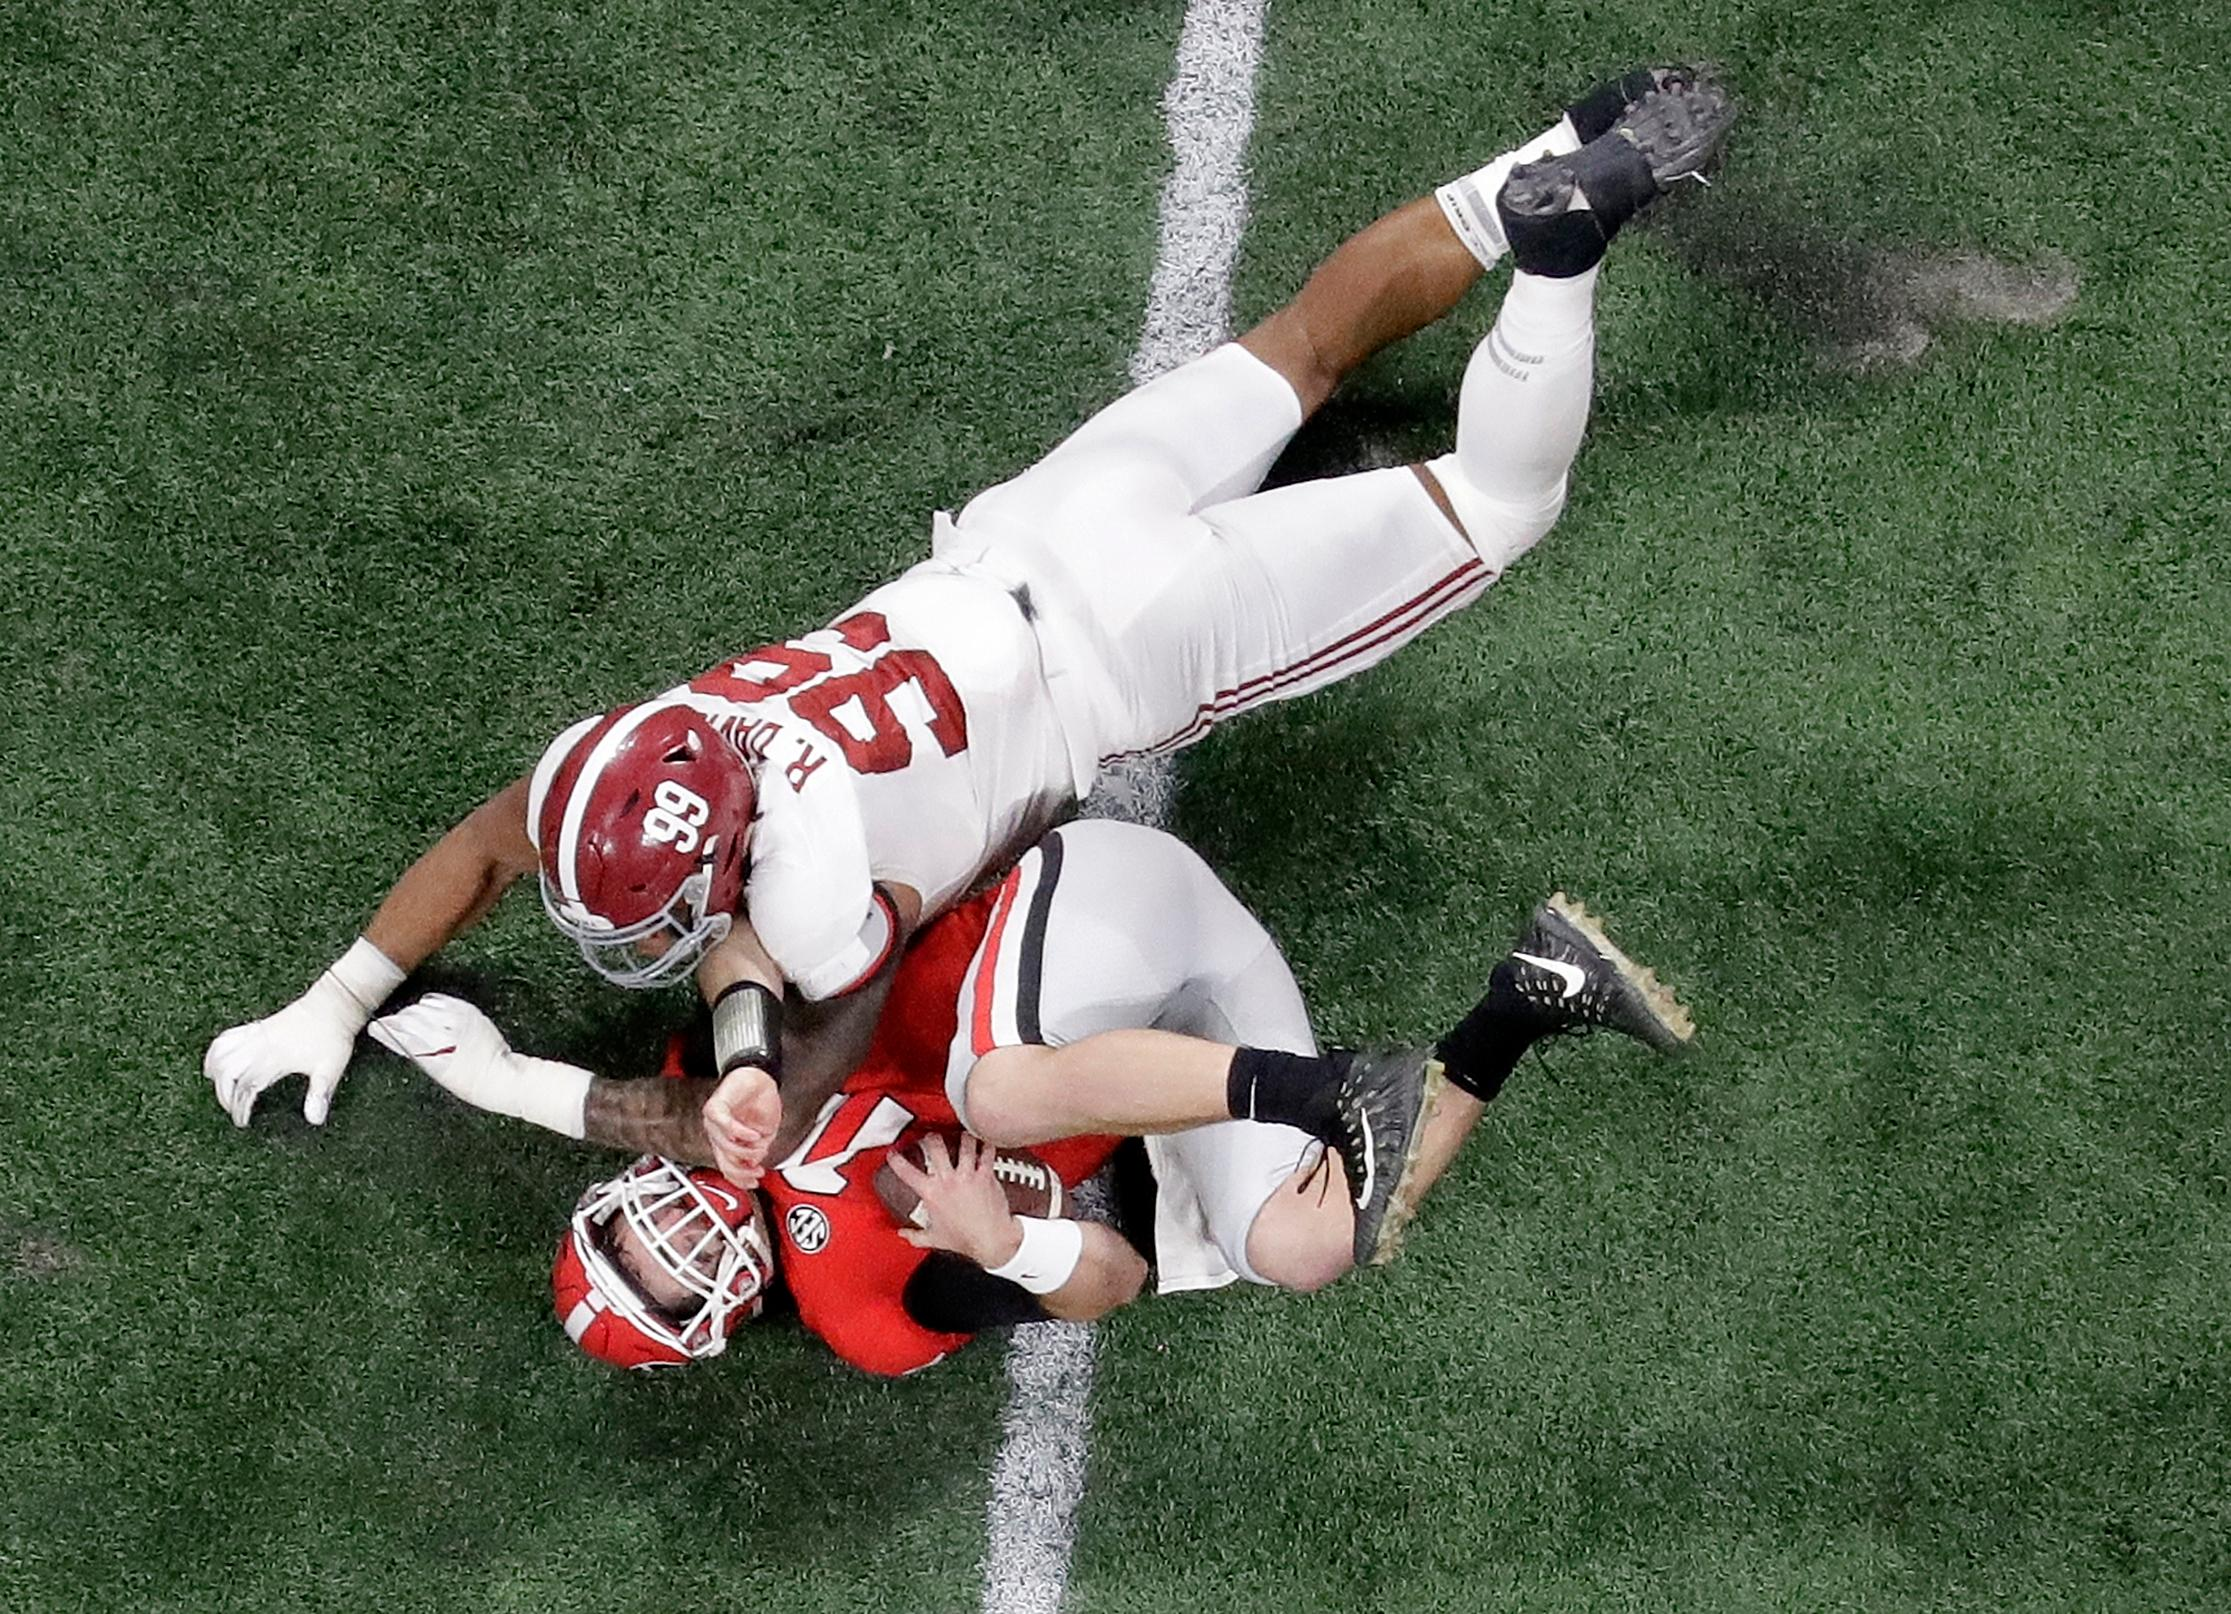 Alabama's Raekwon Davis sacks Georgia's Jake Fromm during the second half of the NCAA college football playoff championship game Monday, Jan. 8, 2018, in Atlanta. (AP Photo/John Bazemore)